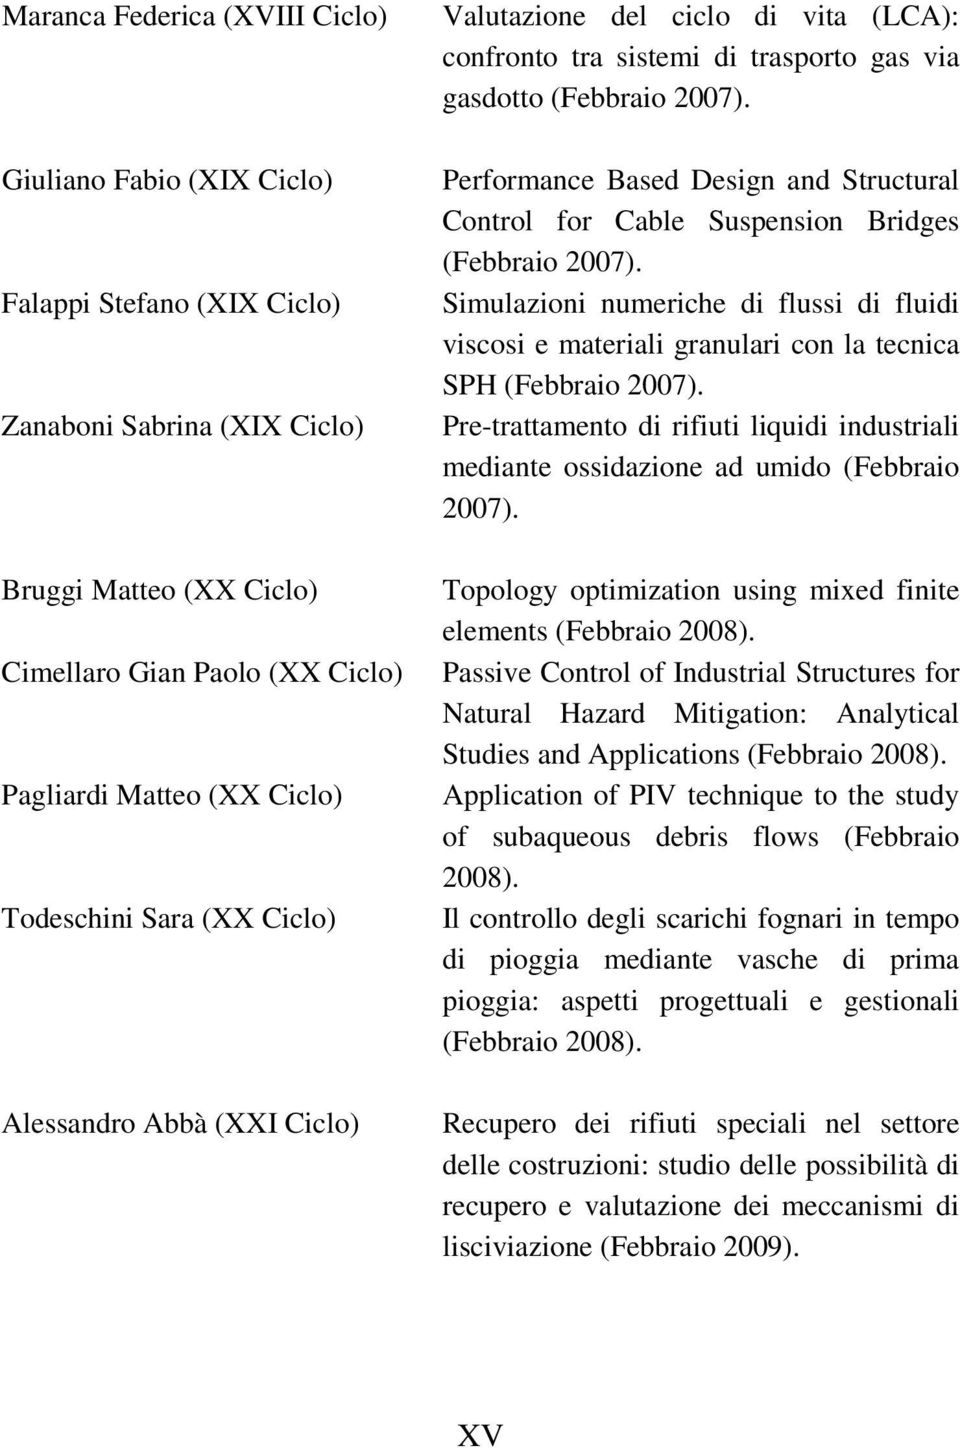 Performance Based Design and Structural Control for Cable Suspension Bridges (Febbraio 2007).